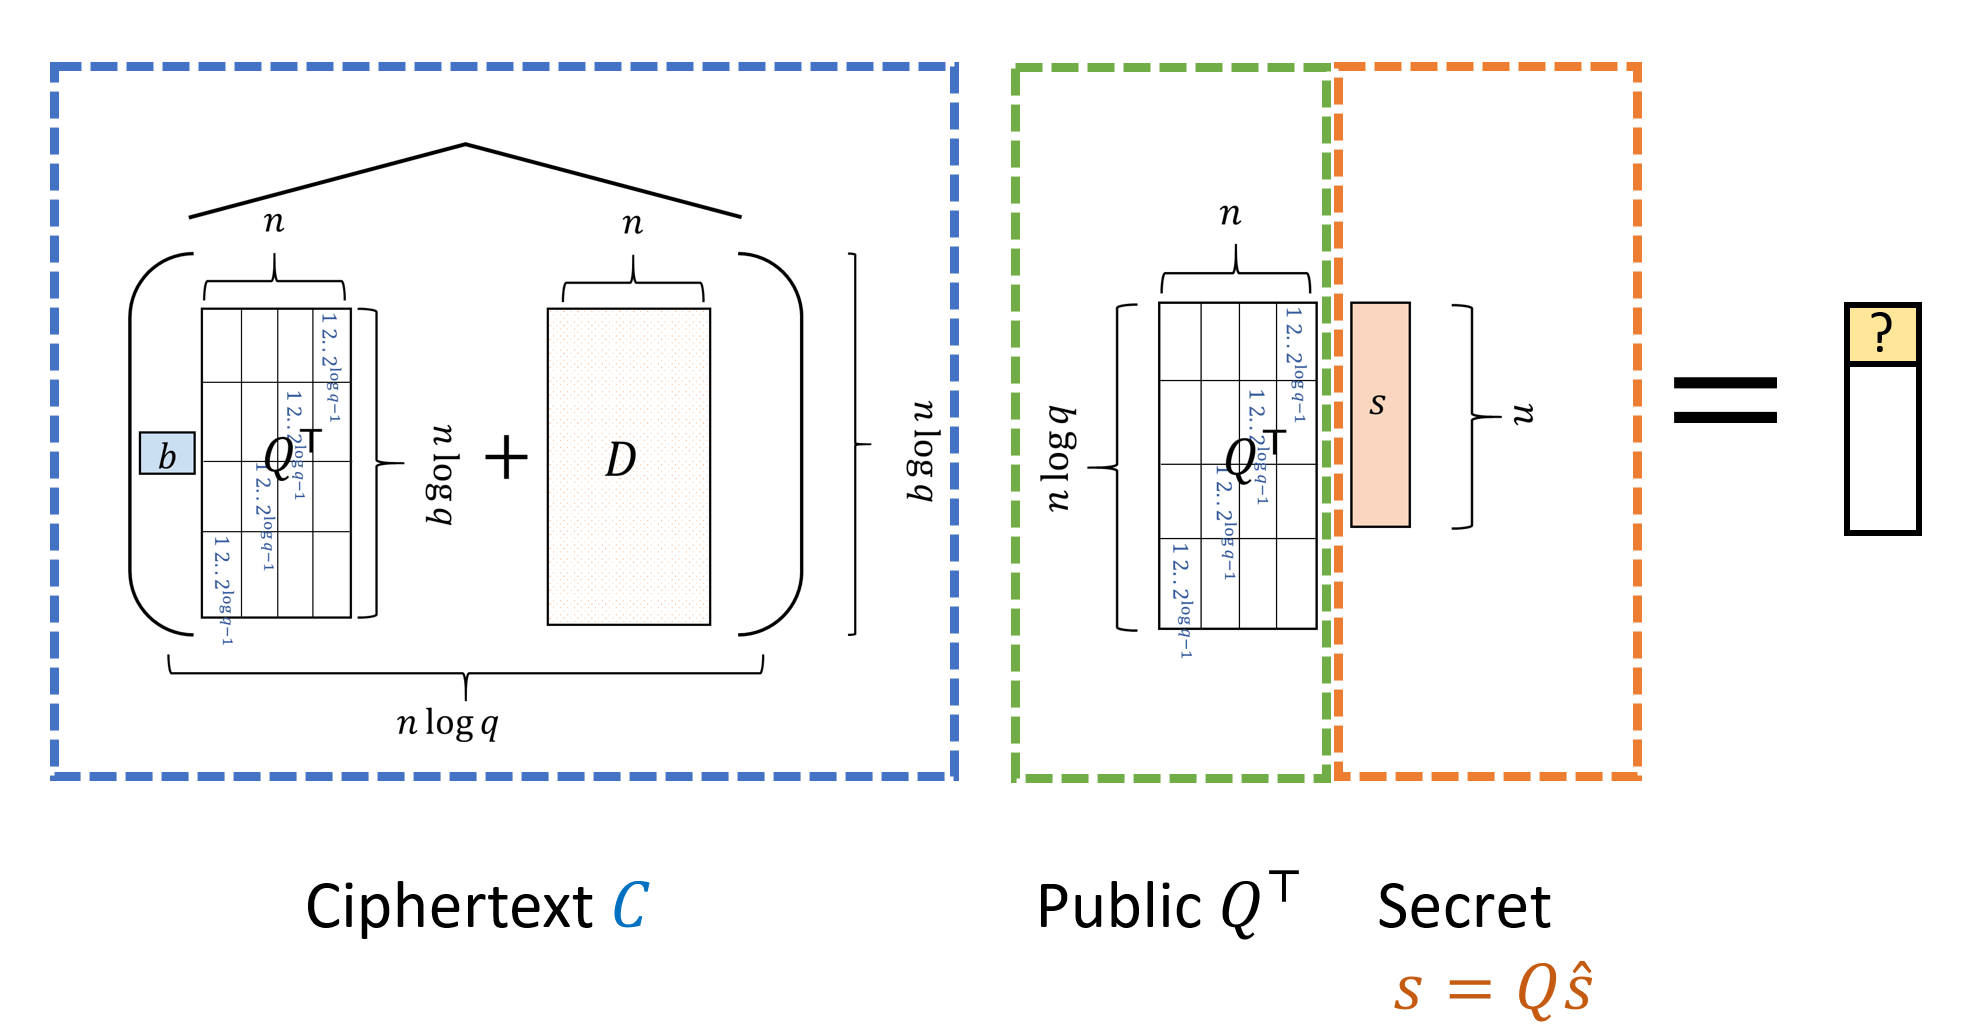 17.5: We decrypt a ciphertext C=\widehat{(bQ^\top +D)} by looking at the first coordinate of \ensuremath{\mathit{CQ}}^\top s (or equivalently, \ensuremath{\mathit{CQ}}^\top Q\hat{s}). If b=0 then this equals to the first coordinate of Ds, which is at most \sqrt{q} in magintude. If b=1 then we get an extra factor of Q^\top s which we set to be in the interval (0.499q,0.51q). We can think of either s or \hat{s} as our secret key.